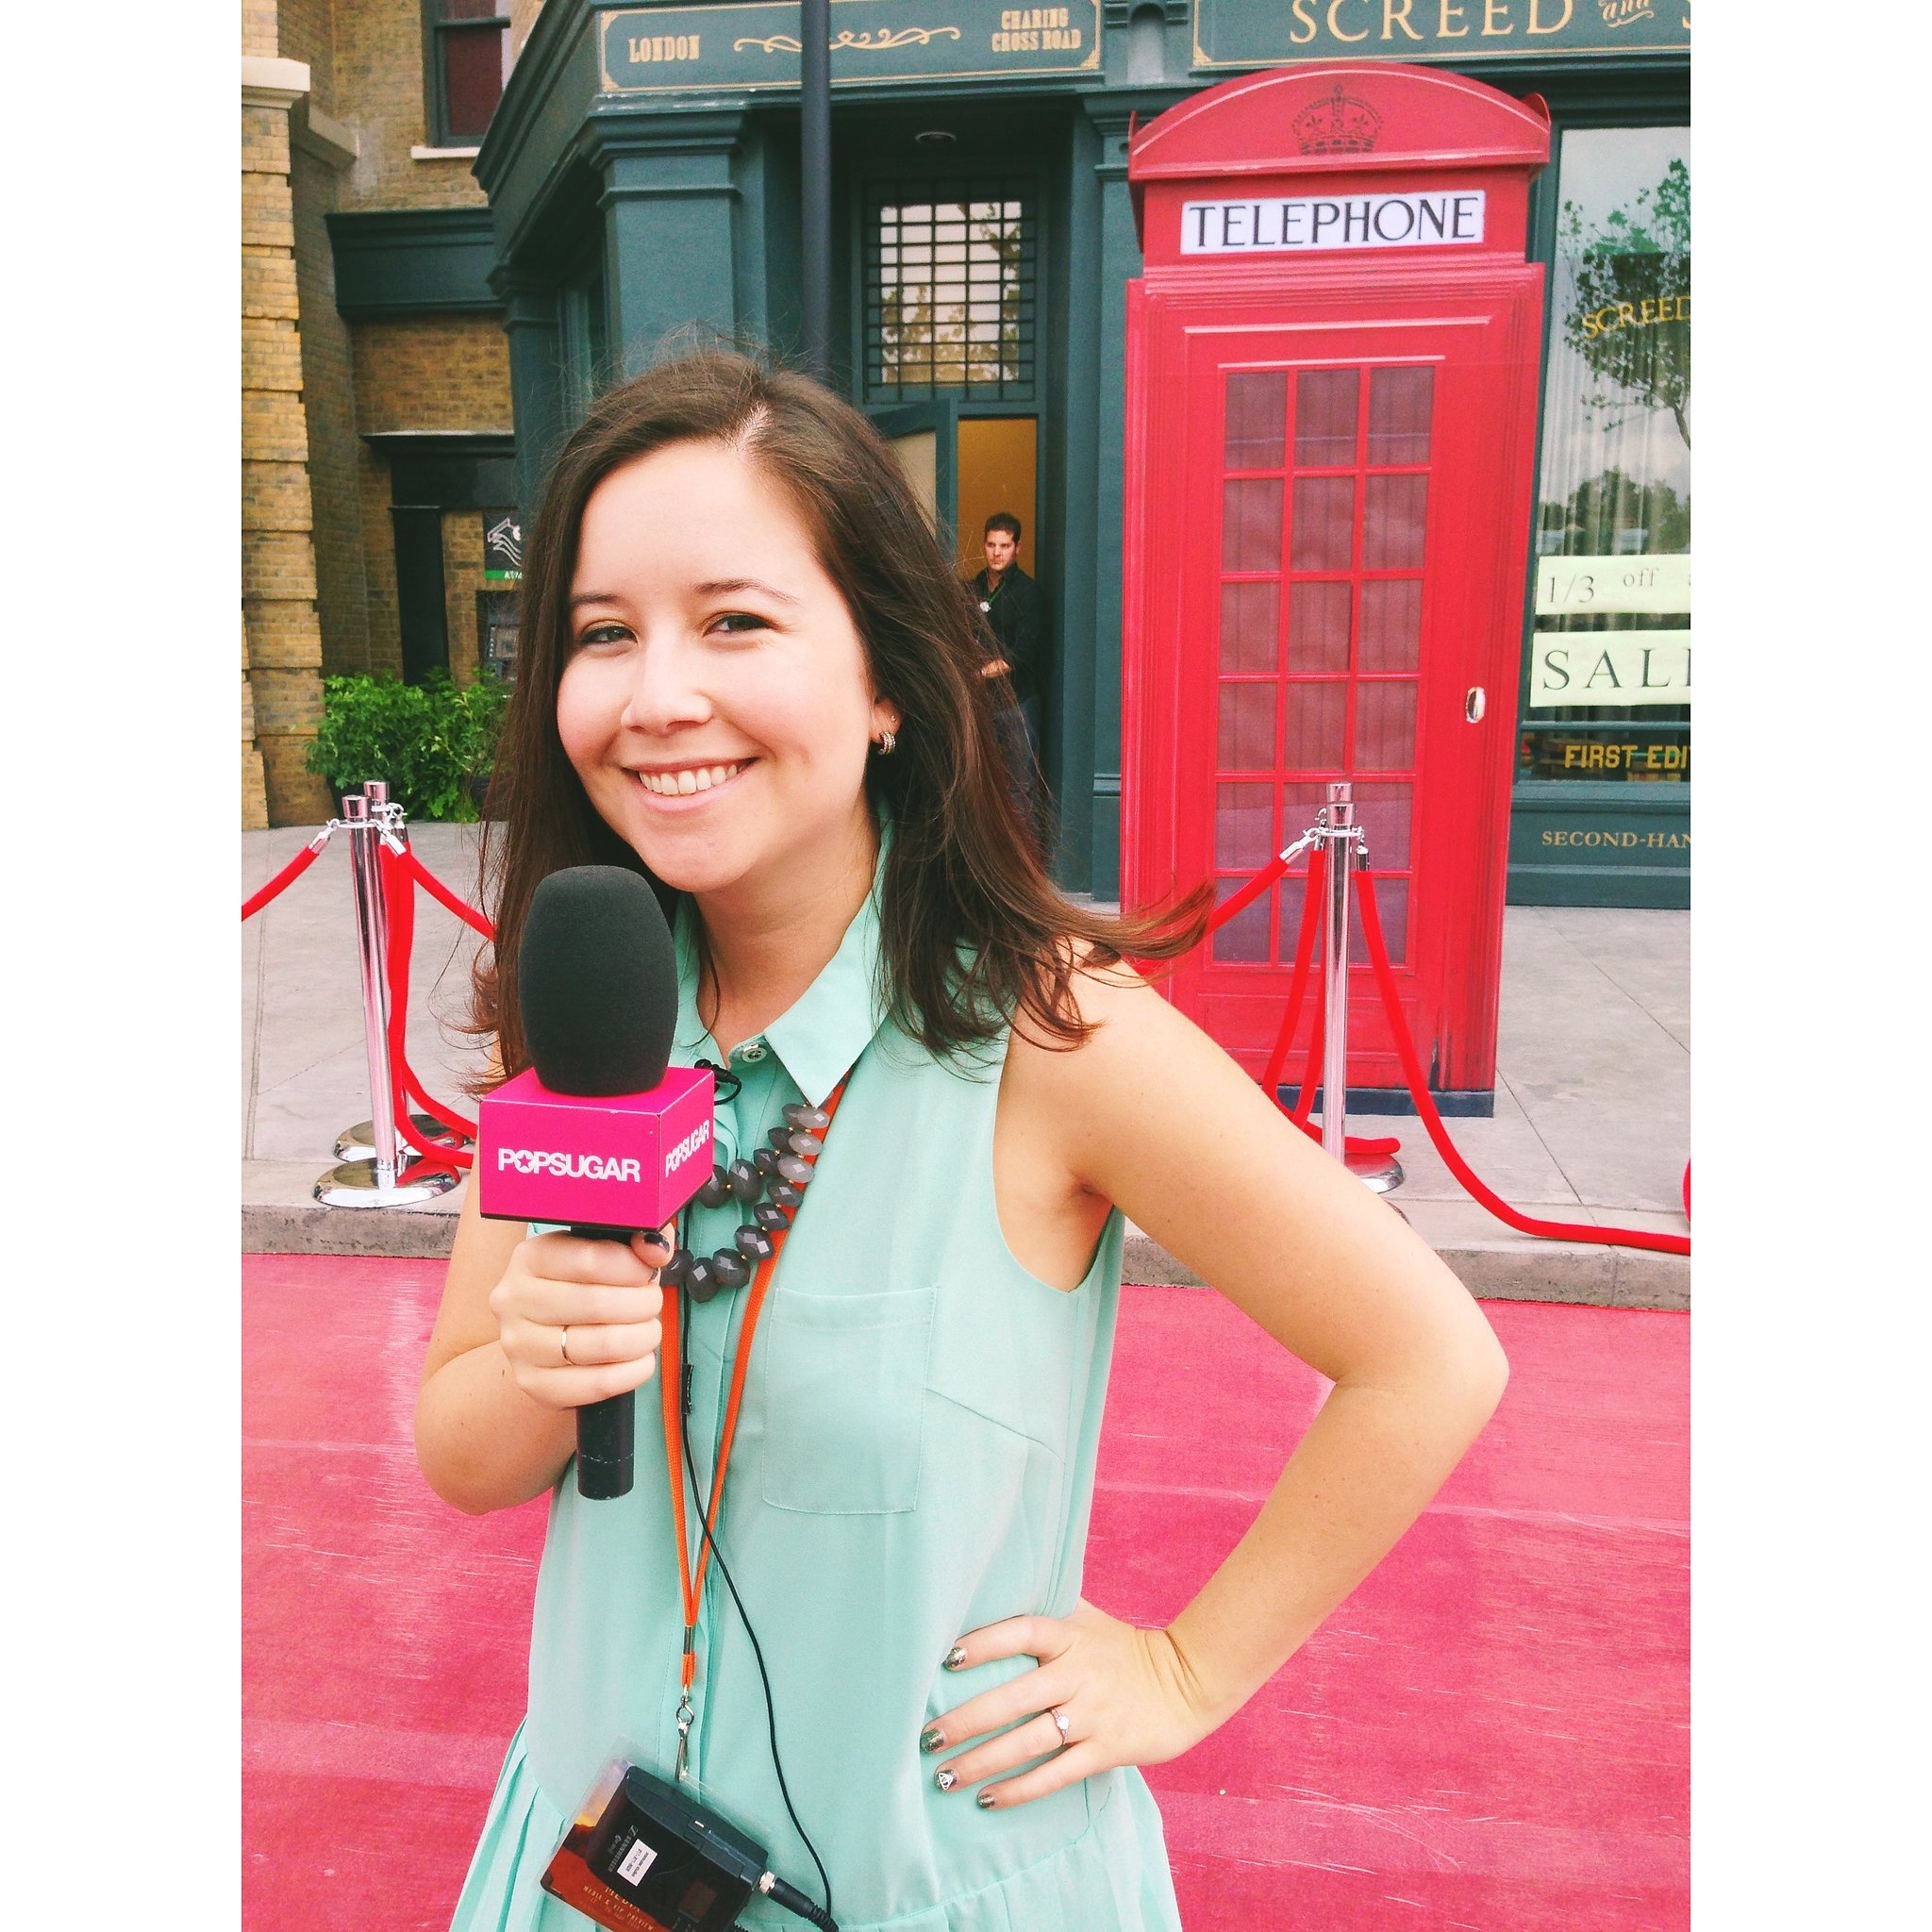 I posed in front of the red telephone box on the red carpet ahead of interviewing the stars of Harry Potter.